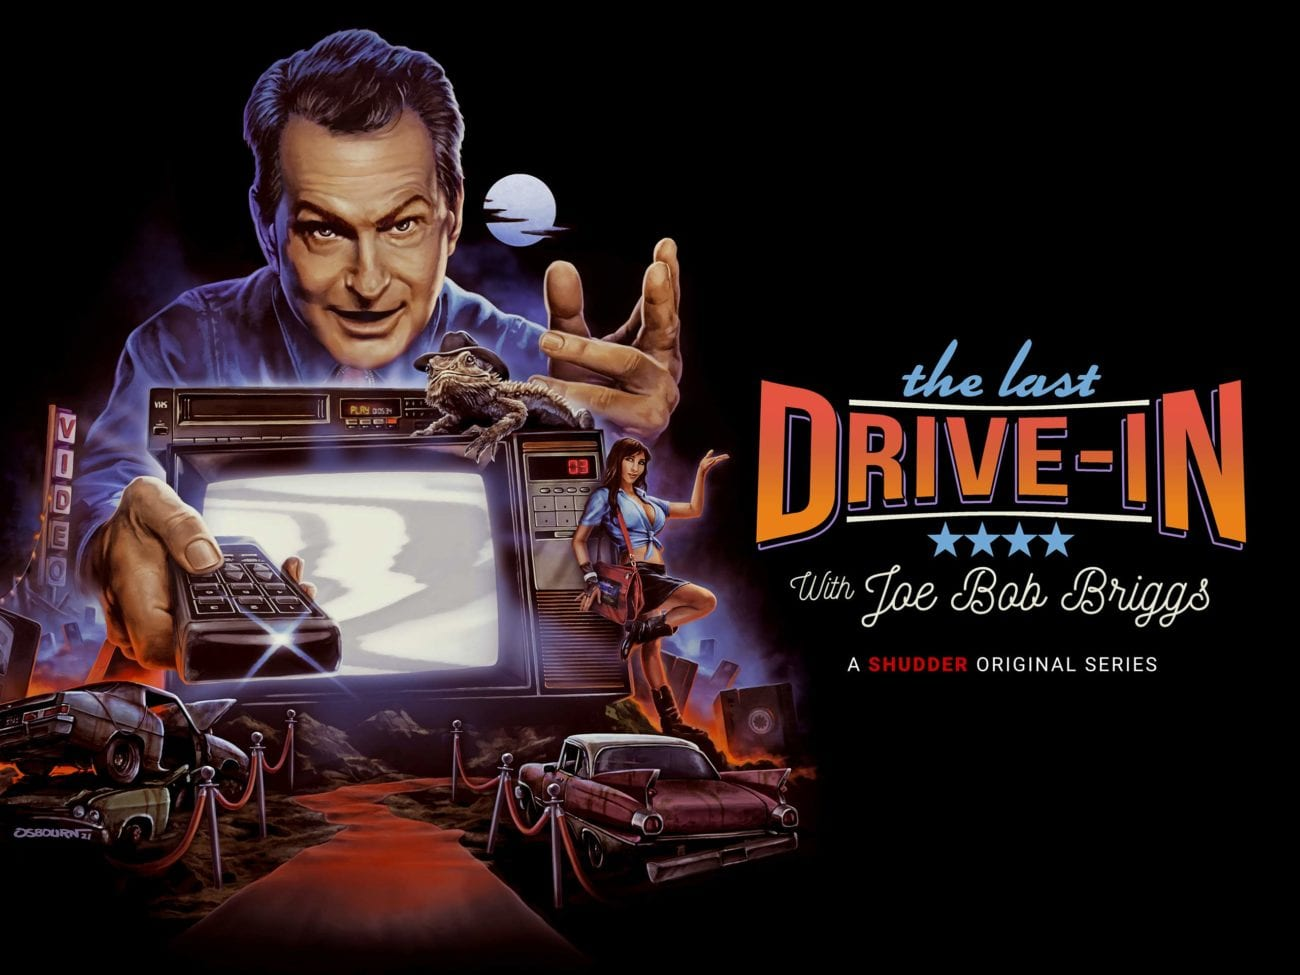 Cartoon image of Joe Bob holding a remote above a drive-in screen